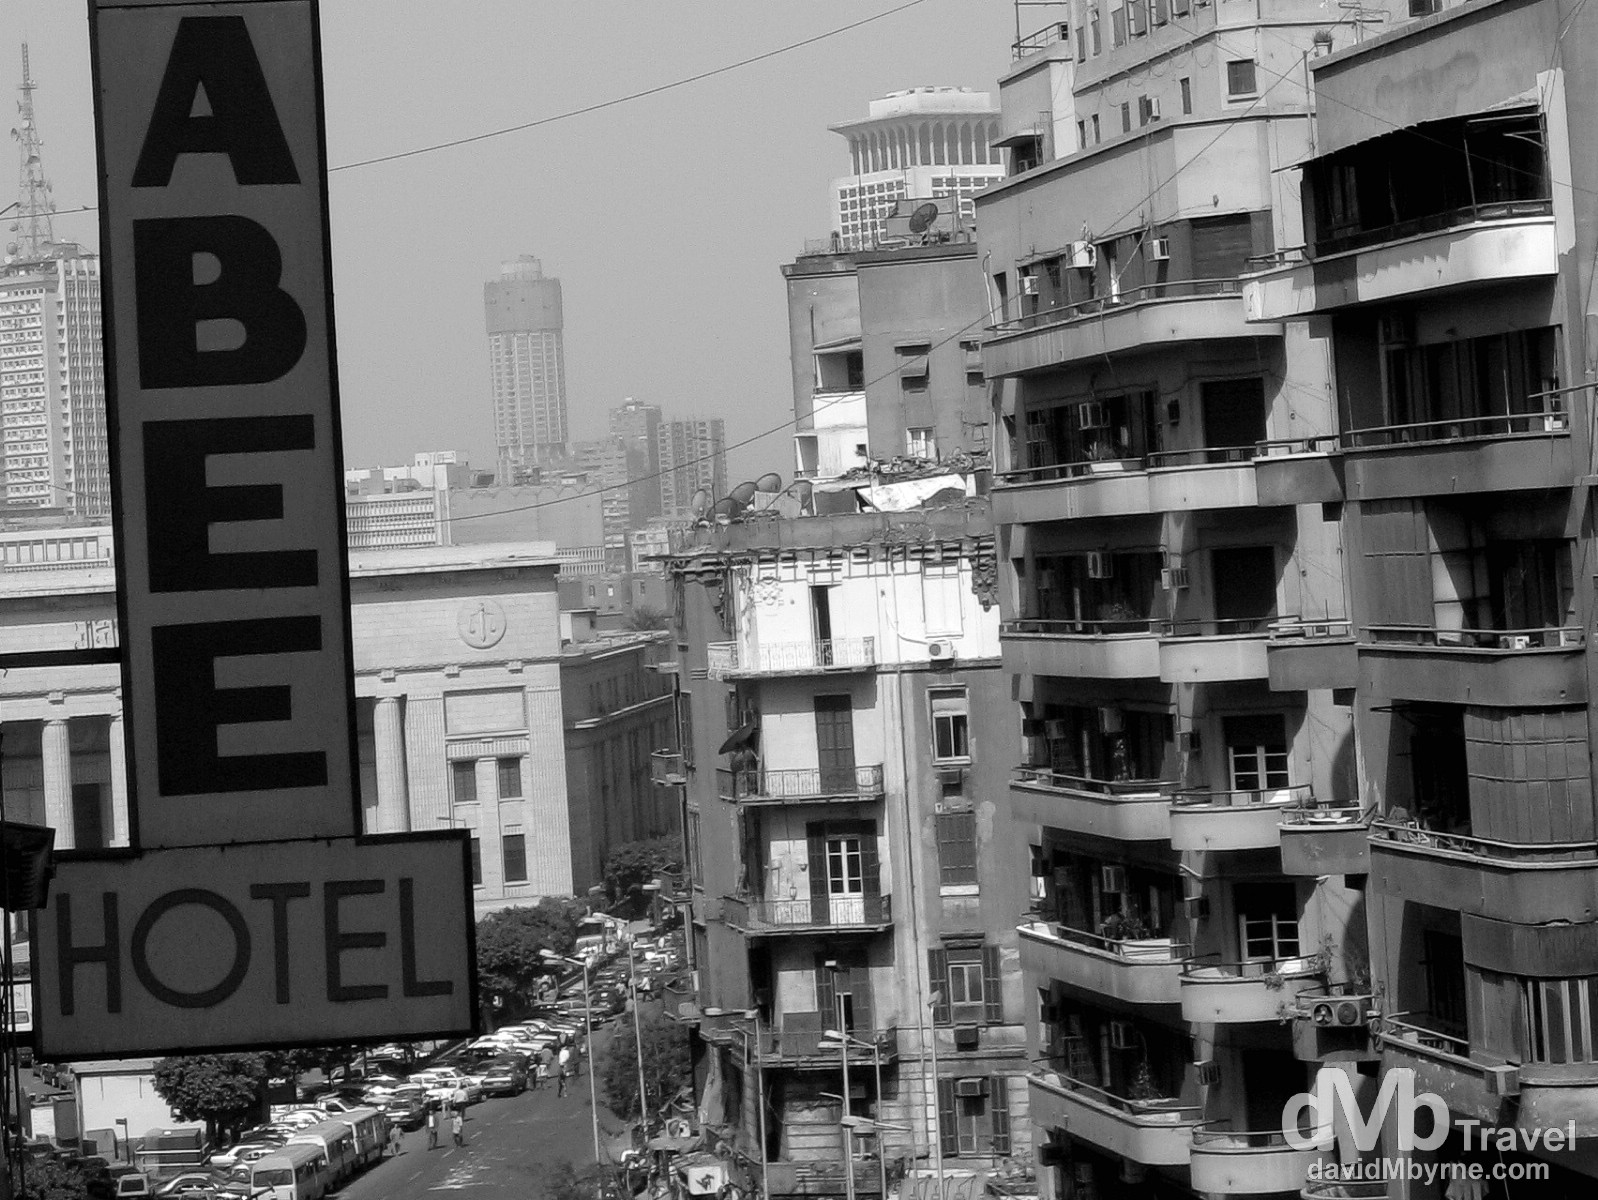 A section of Cairo, Egypt, as seen from the restaurant of the Scarabee Hotel in downtown Cairo, Egypt. April 10, 2008.